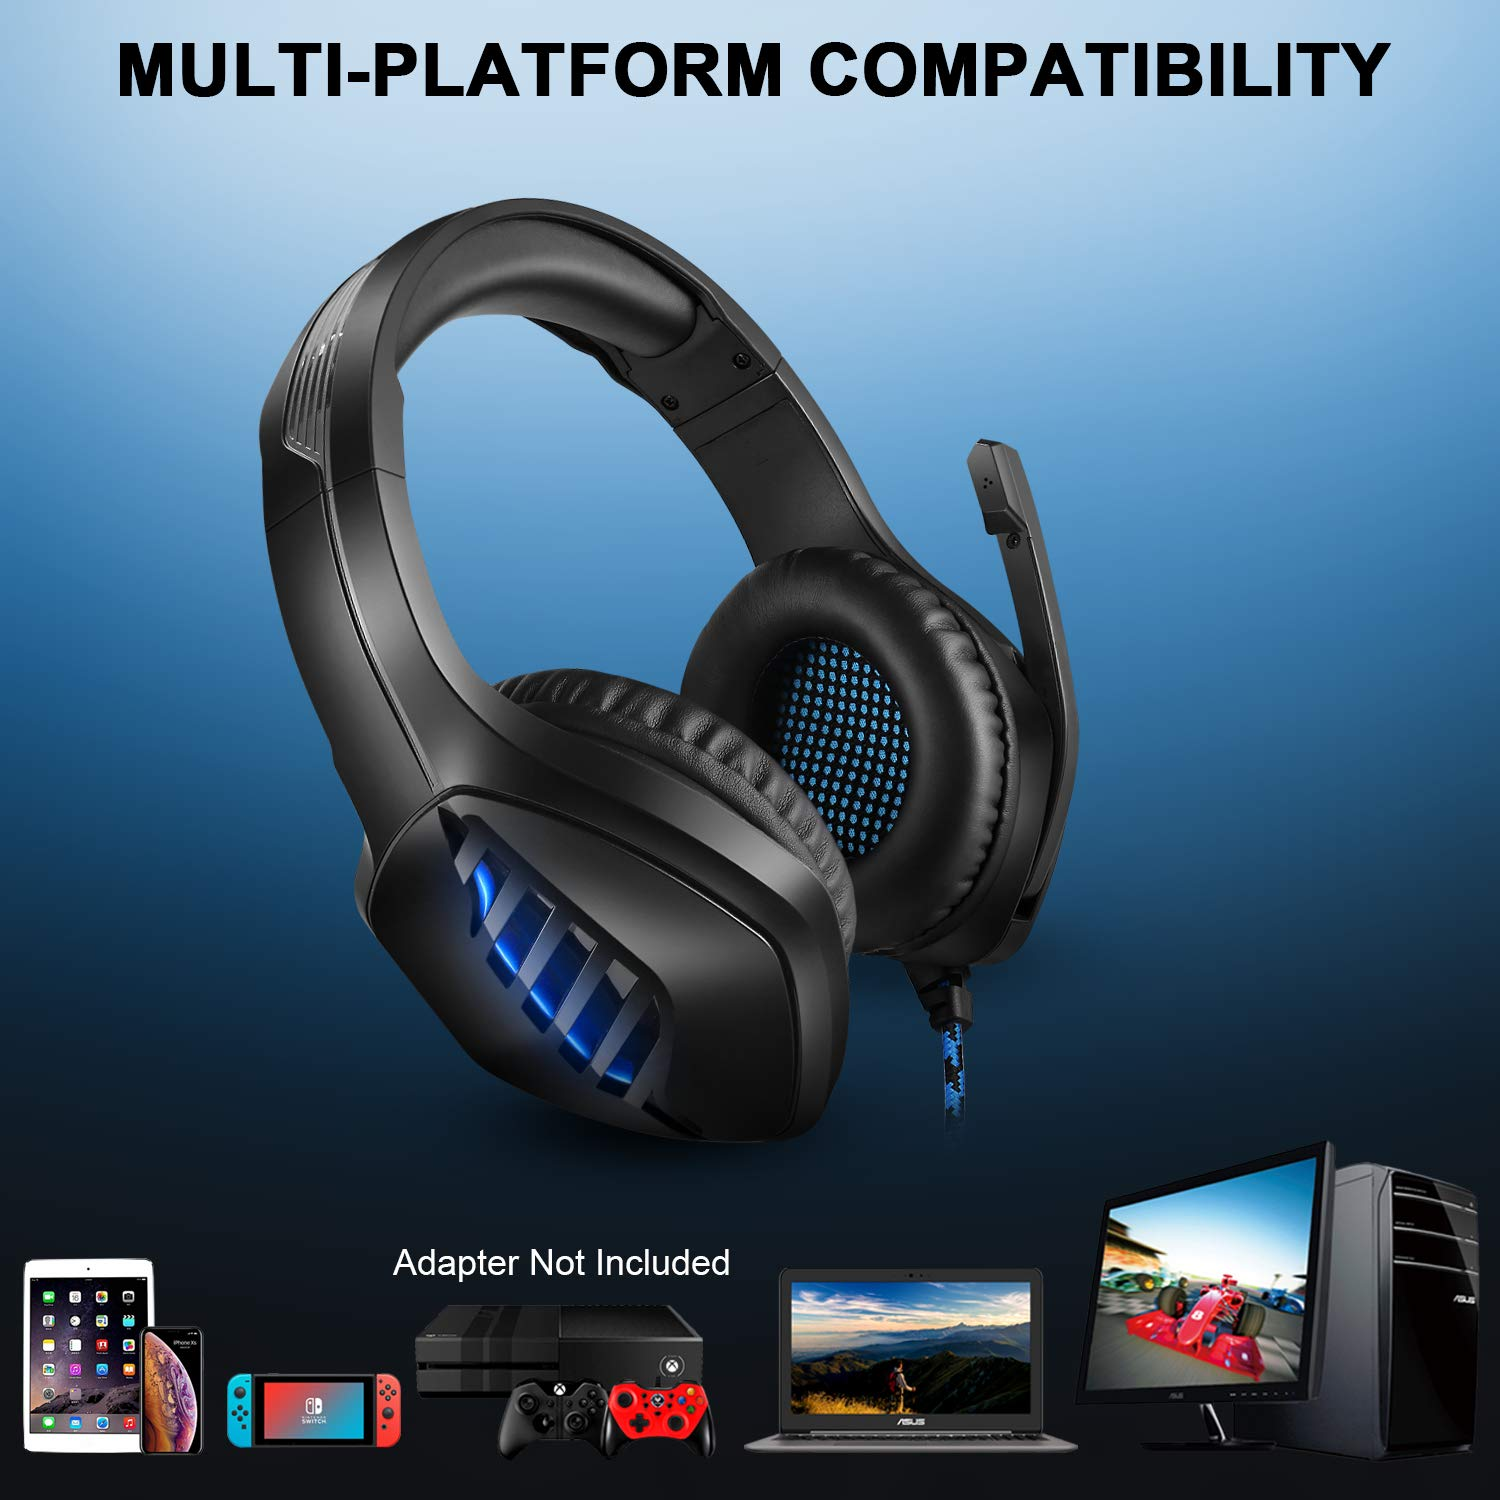 Tyuobox Gaming Headset Headphone with 2.2 M Tangle Free Cord and Microphone-Black, PS4 Headset with Noise Canceling Mic & LED Light, Compatible with PC, PS4, Xbox One Controller